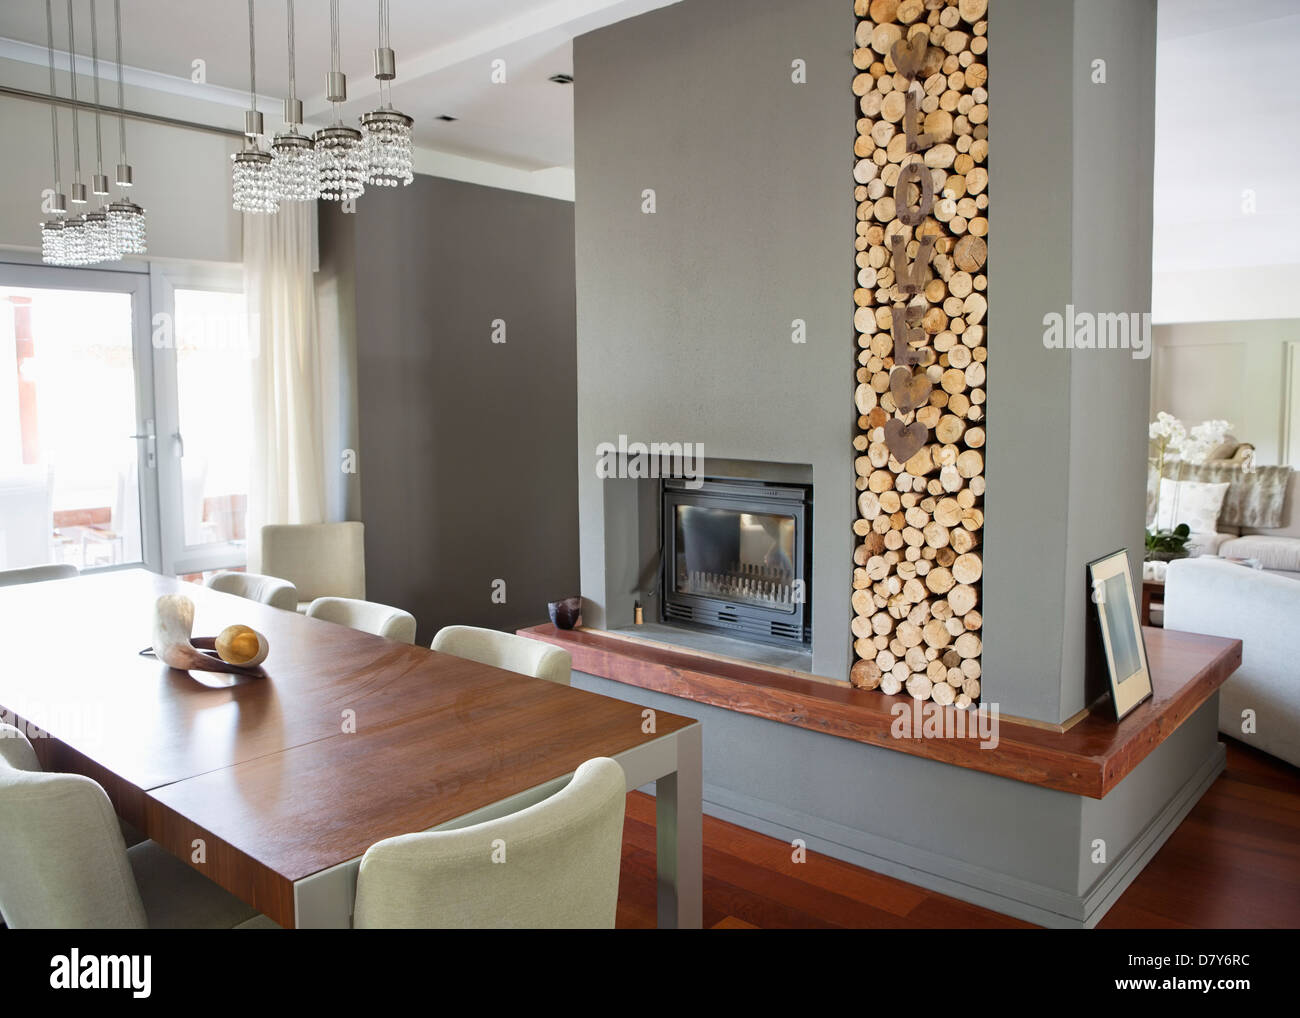 Fireplace in modern house - Stock Image